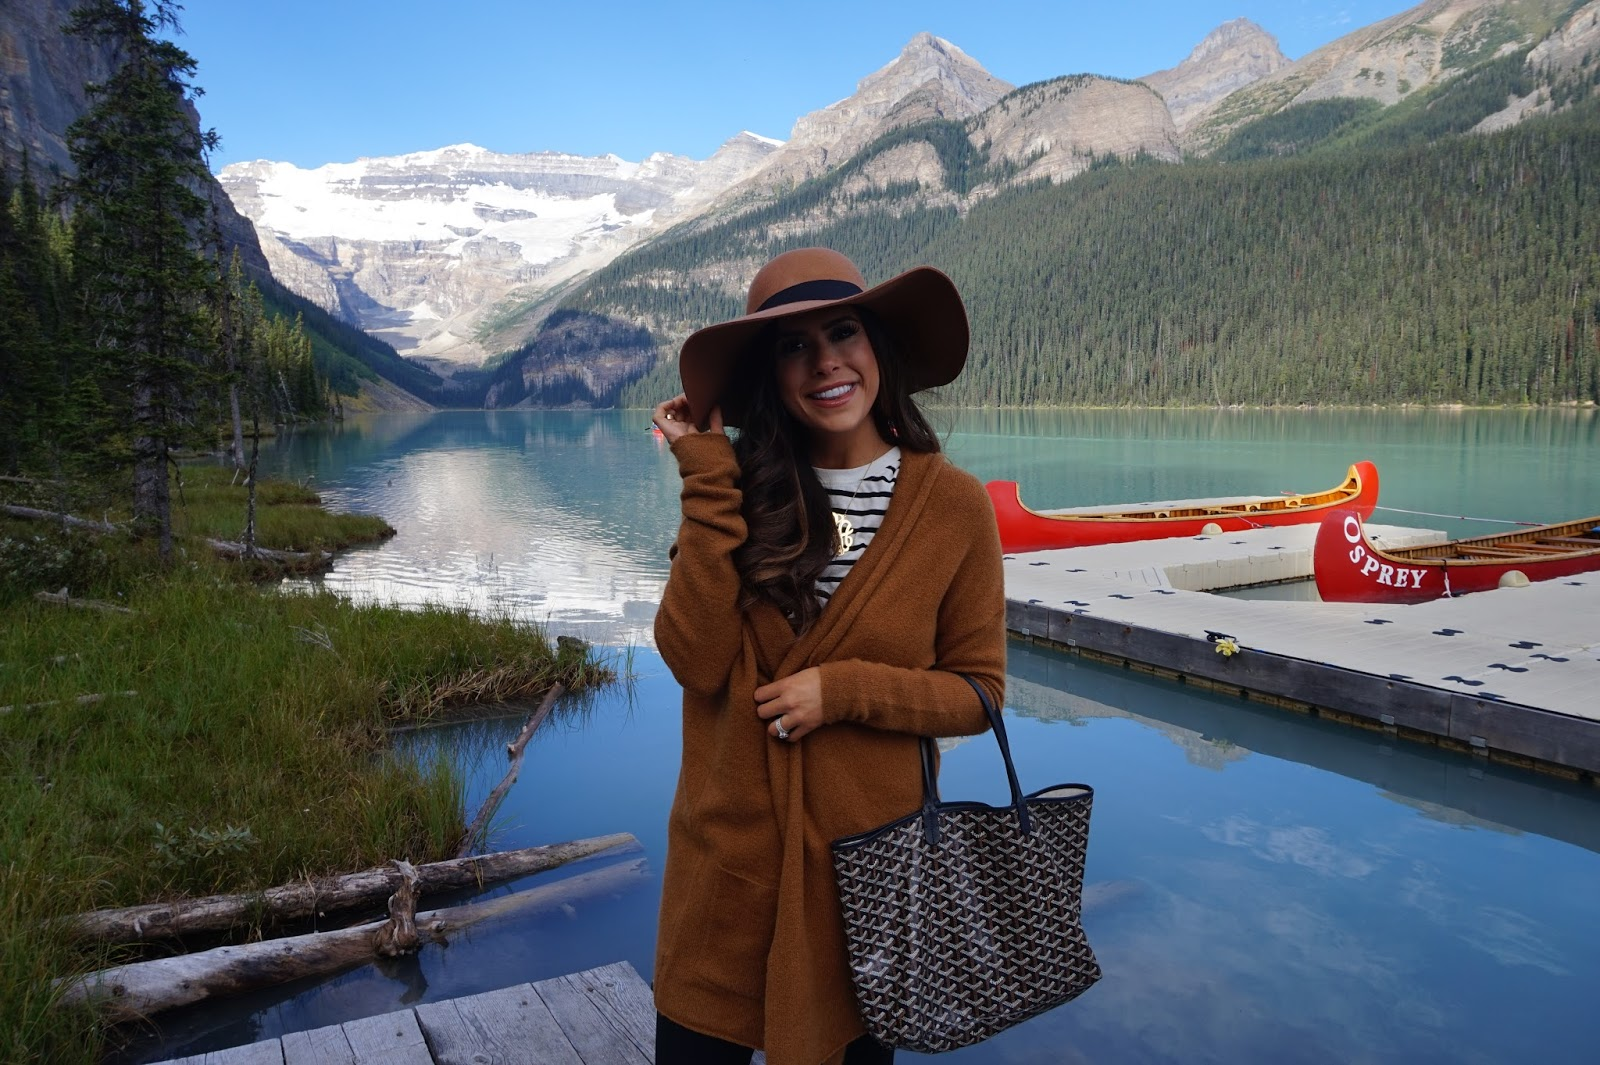 emily gemma, the sweetest thing blog, travel blogger, lake louise, BANFF trip, blog posts with lake louise and banff, review of fairmont banff fairmont lake louise, beautiful places in Canada, montaign lake canada, emily gemma travel blog, emily gemma canada, airport travel fashion, travel outfit idea, cute airport outfit idea, outfits for fall airport, GOYARD st louis PM black chevron, louis vuitton keep all 55, ,pinterest travel fashion, pinterest airport outfit ideas, pinterest travel location, pinterest beautiful places, pinterest travel review